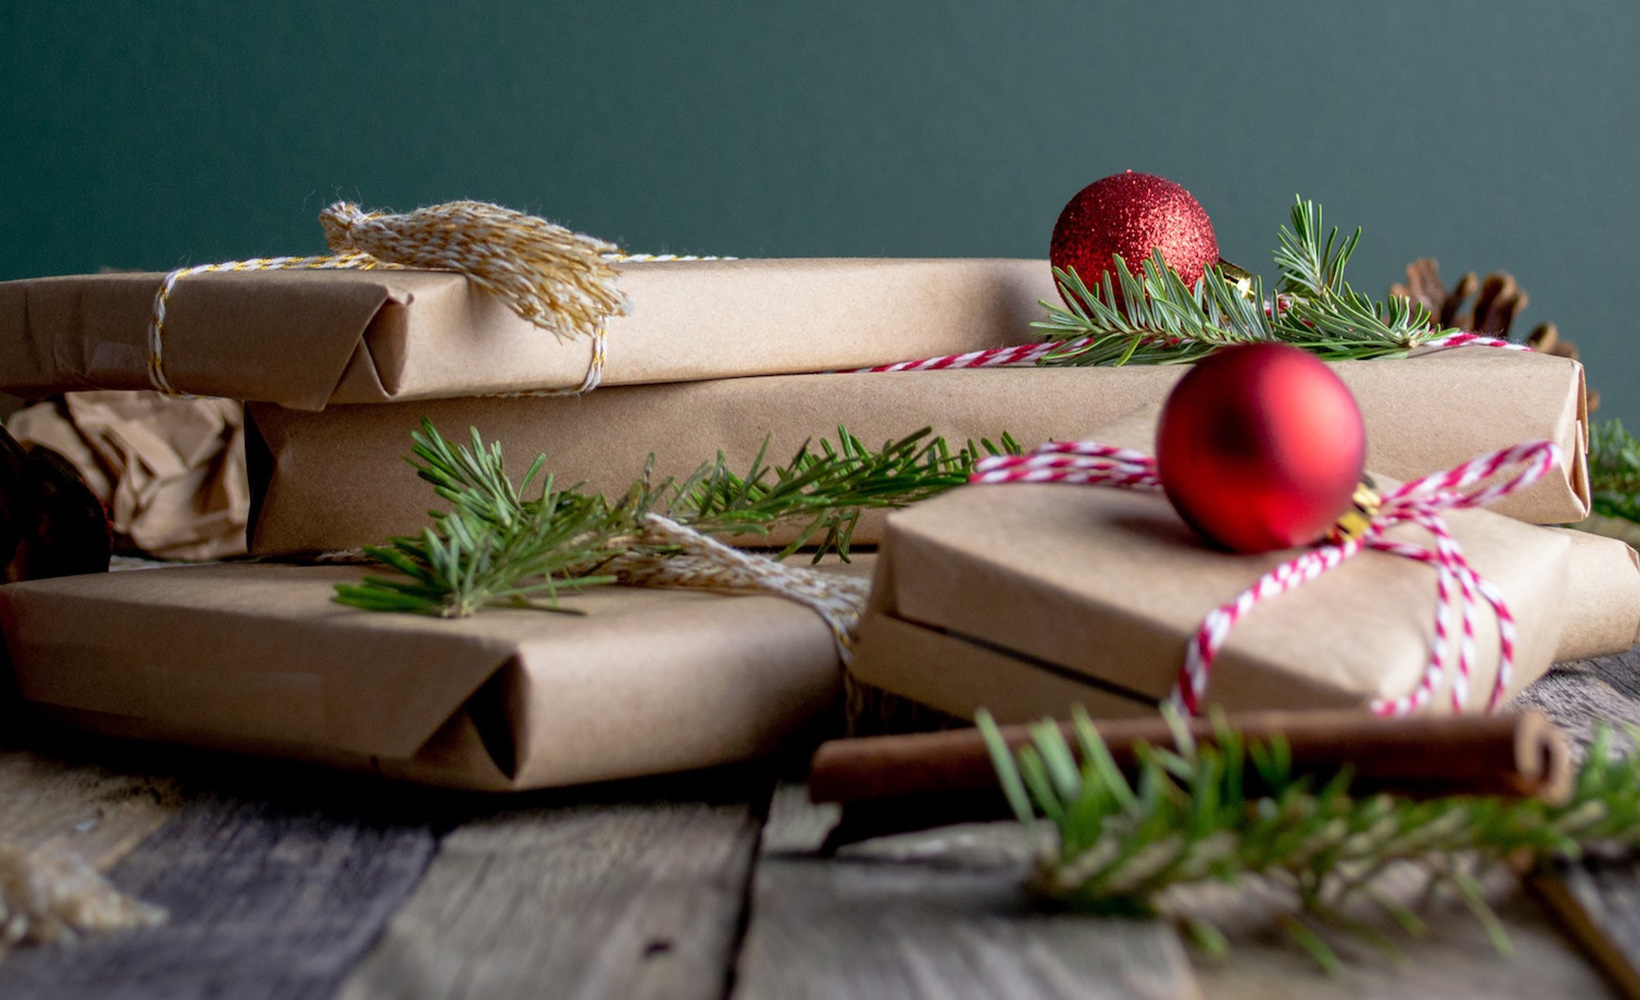 Wrapped Christmas presents on a table representing marketing tips for boosting Christmas sales.